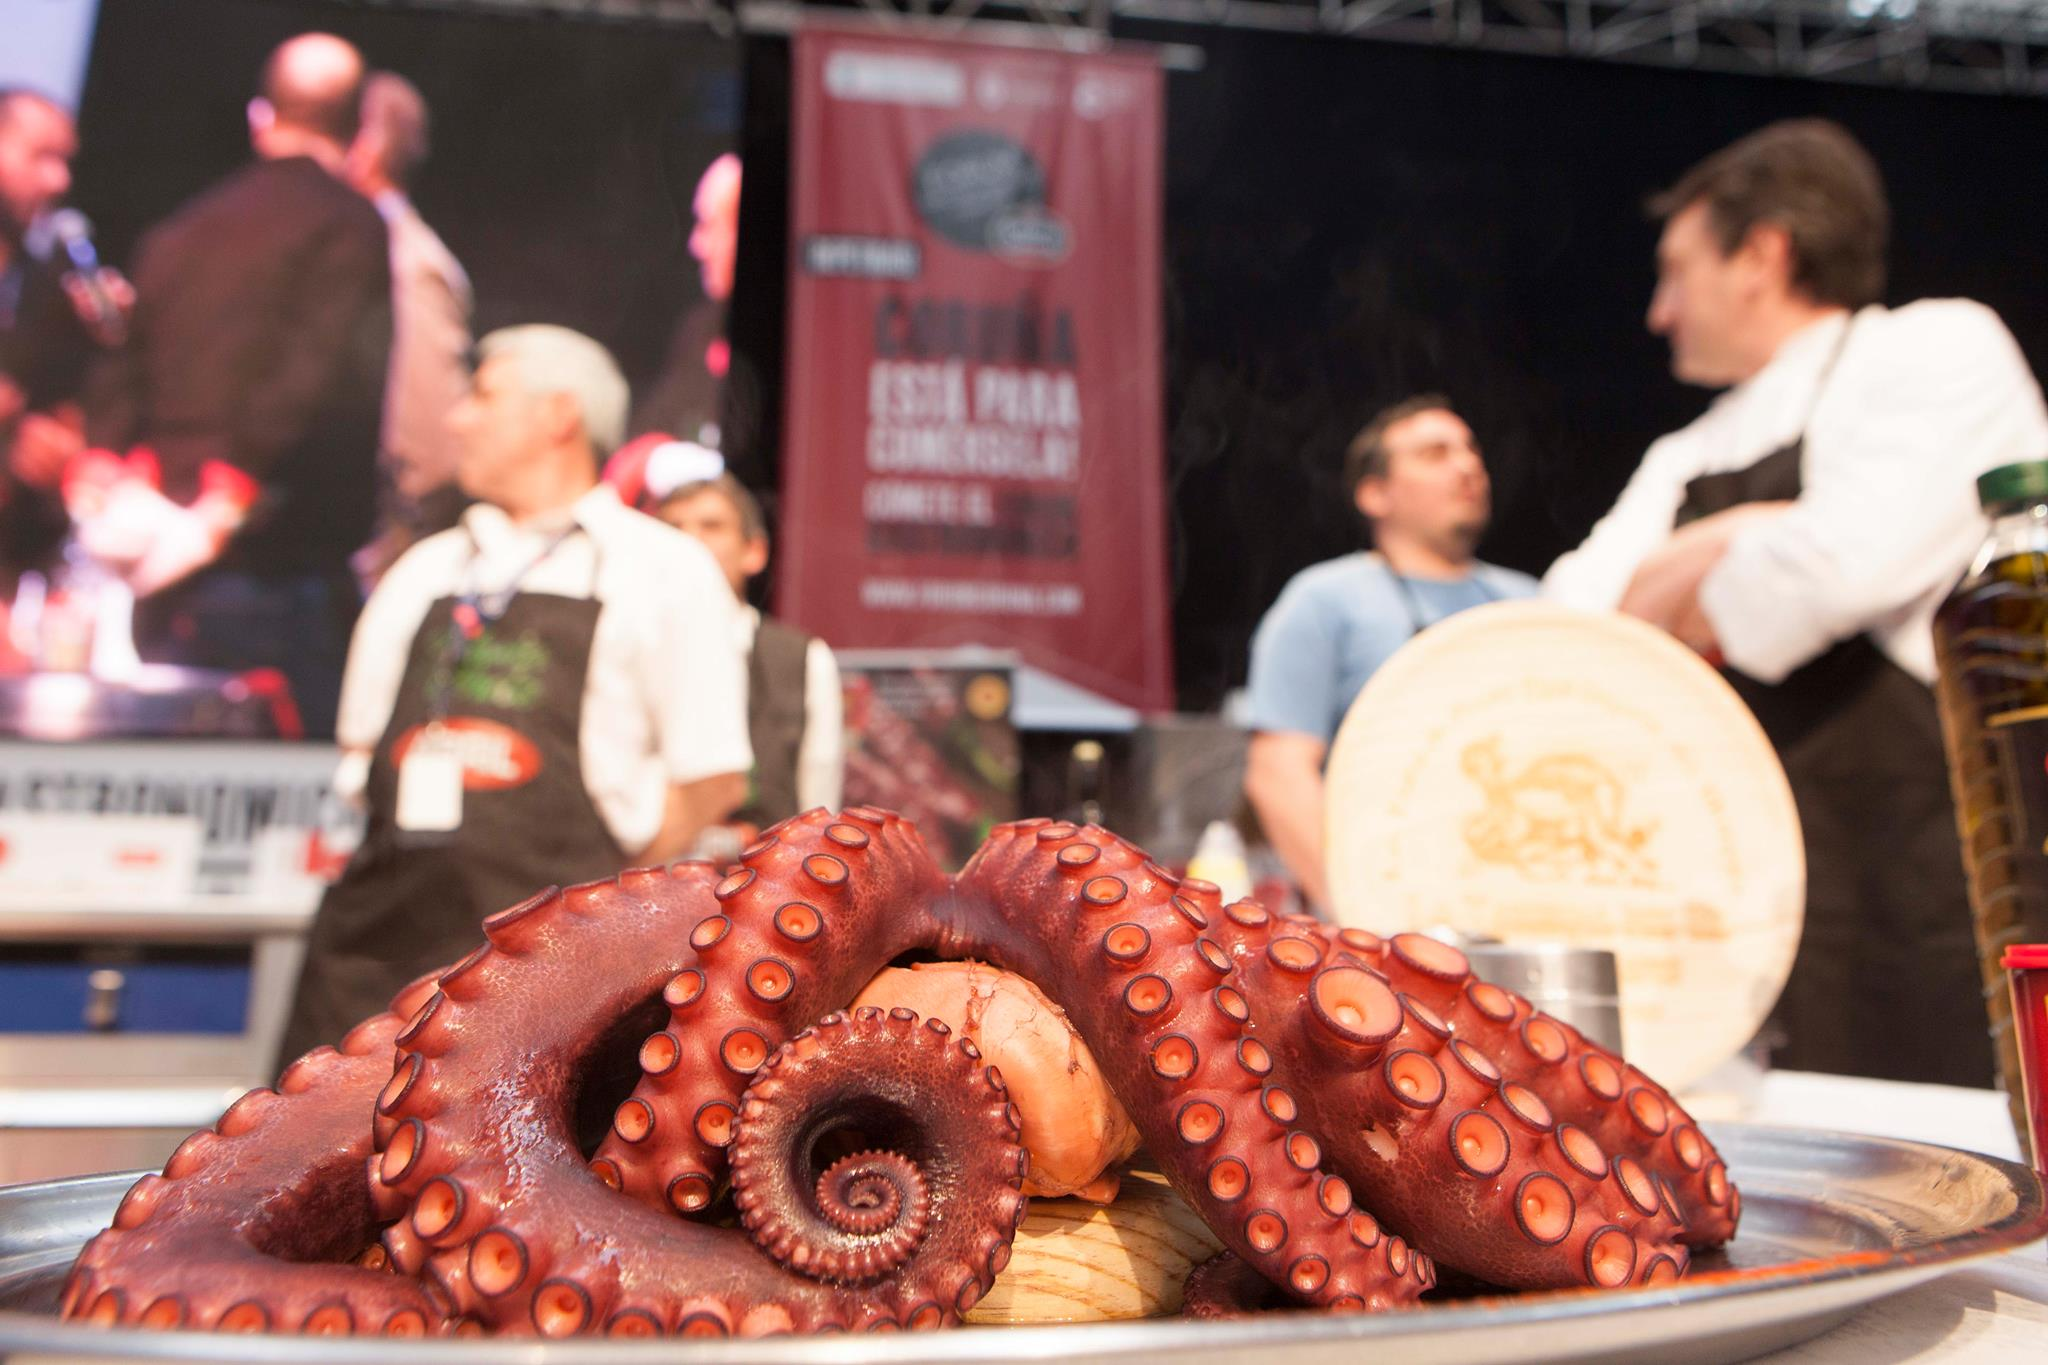 Upcoming Gastronomic Events in Spain This Autumn That You Should Attend